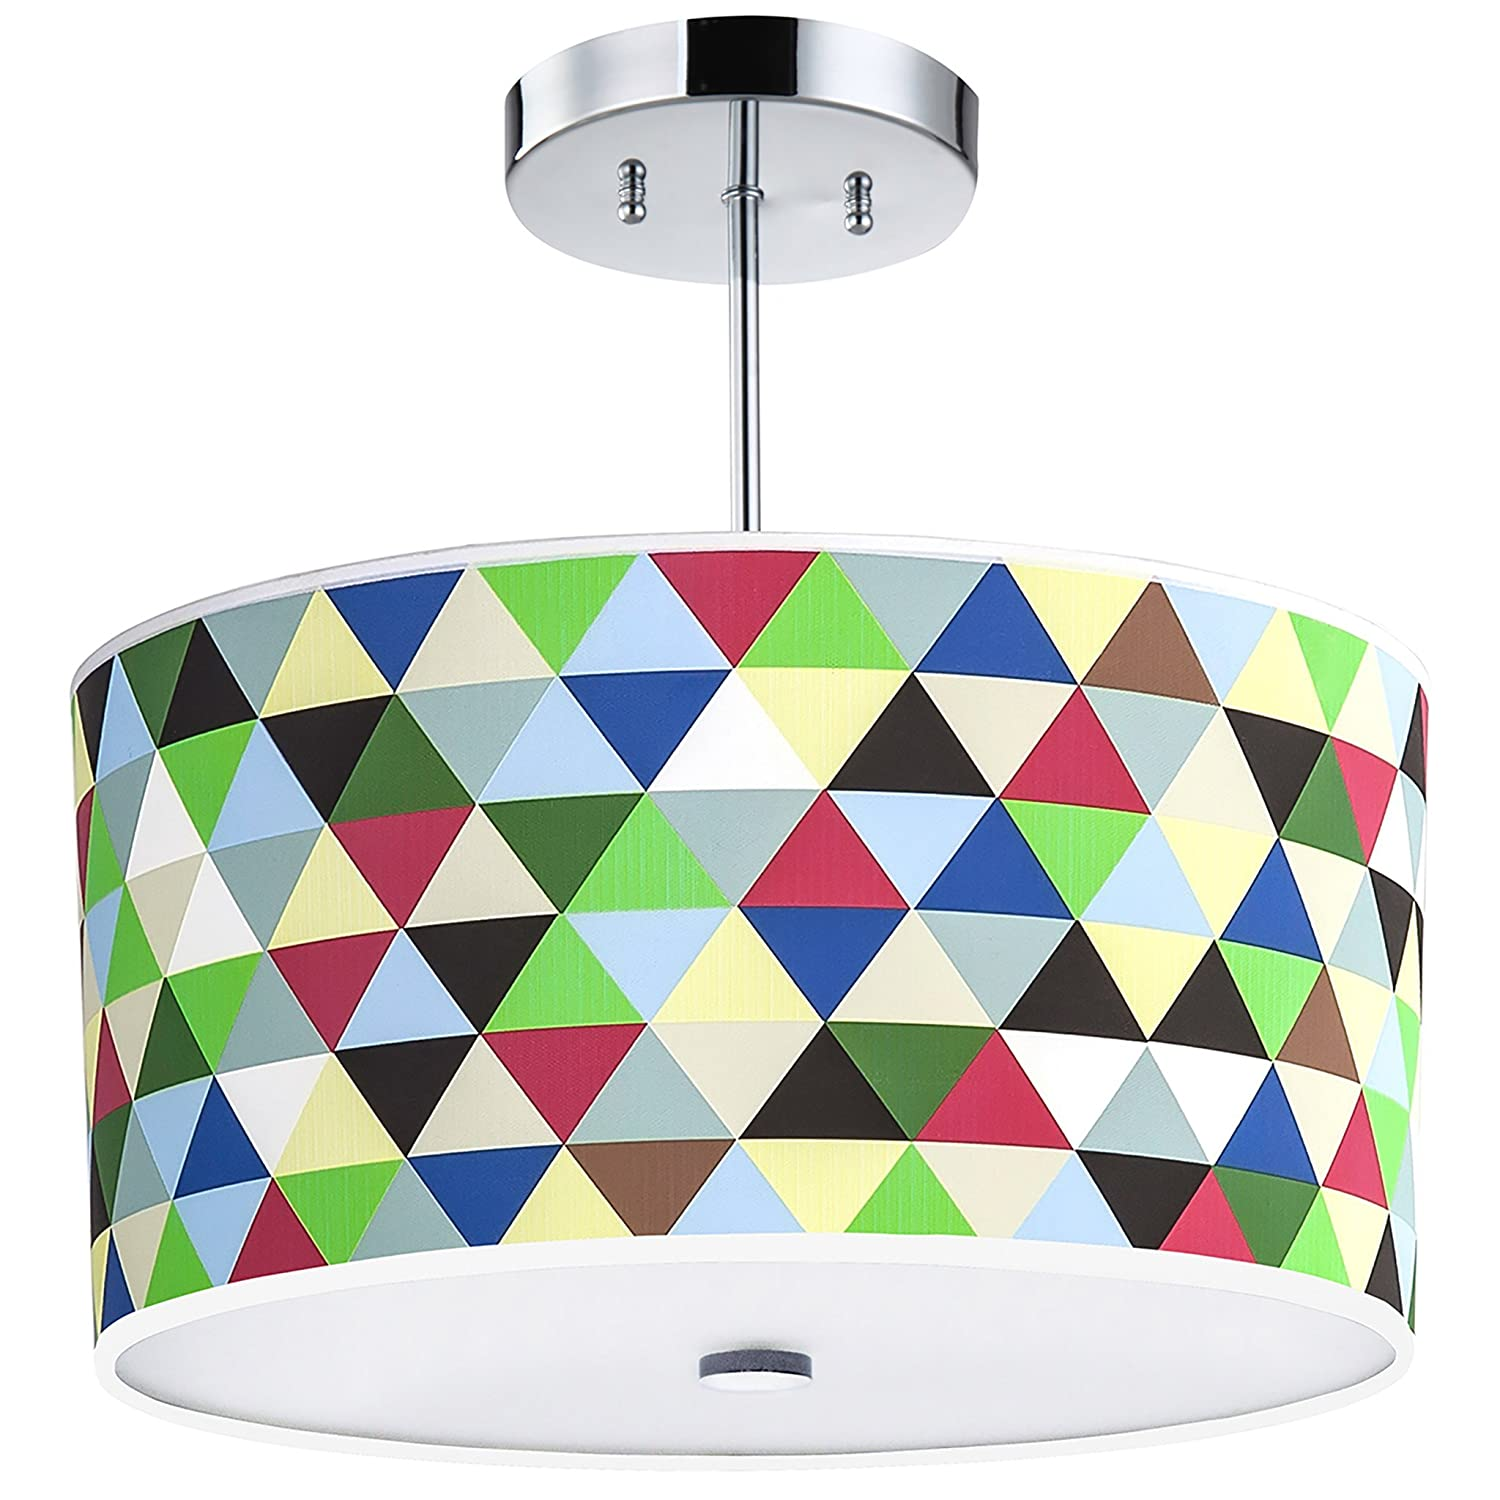 Multi-Colored Triangles Light Fixture,16-Inches, 3-Light